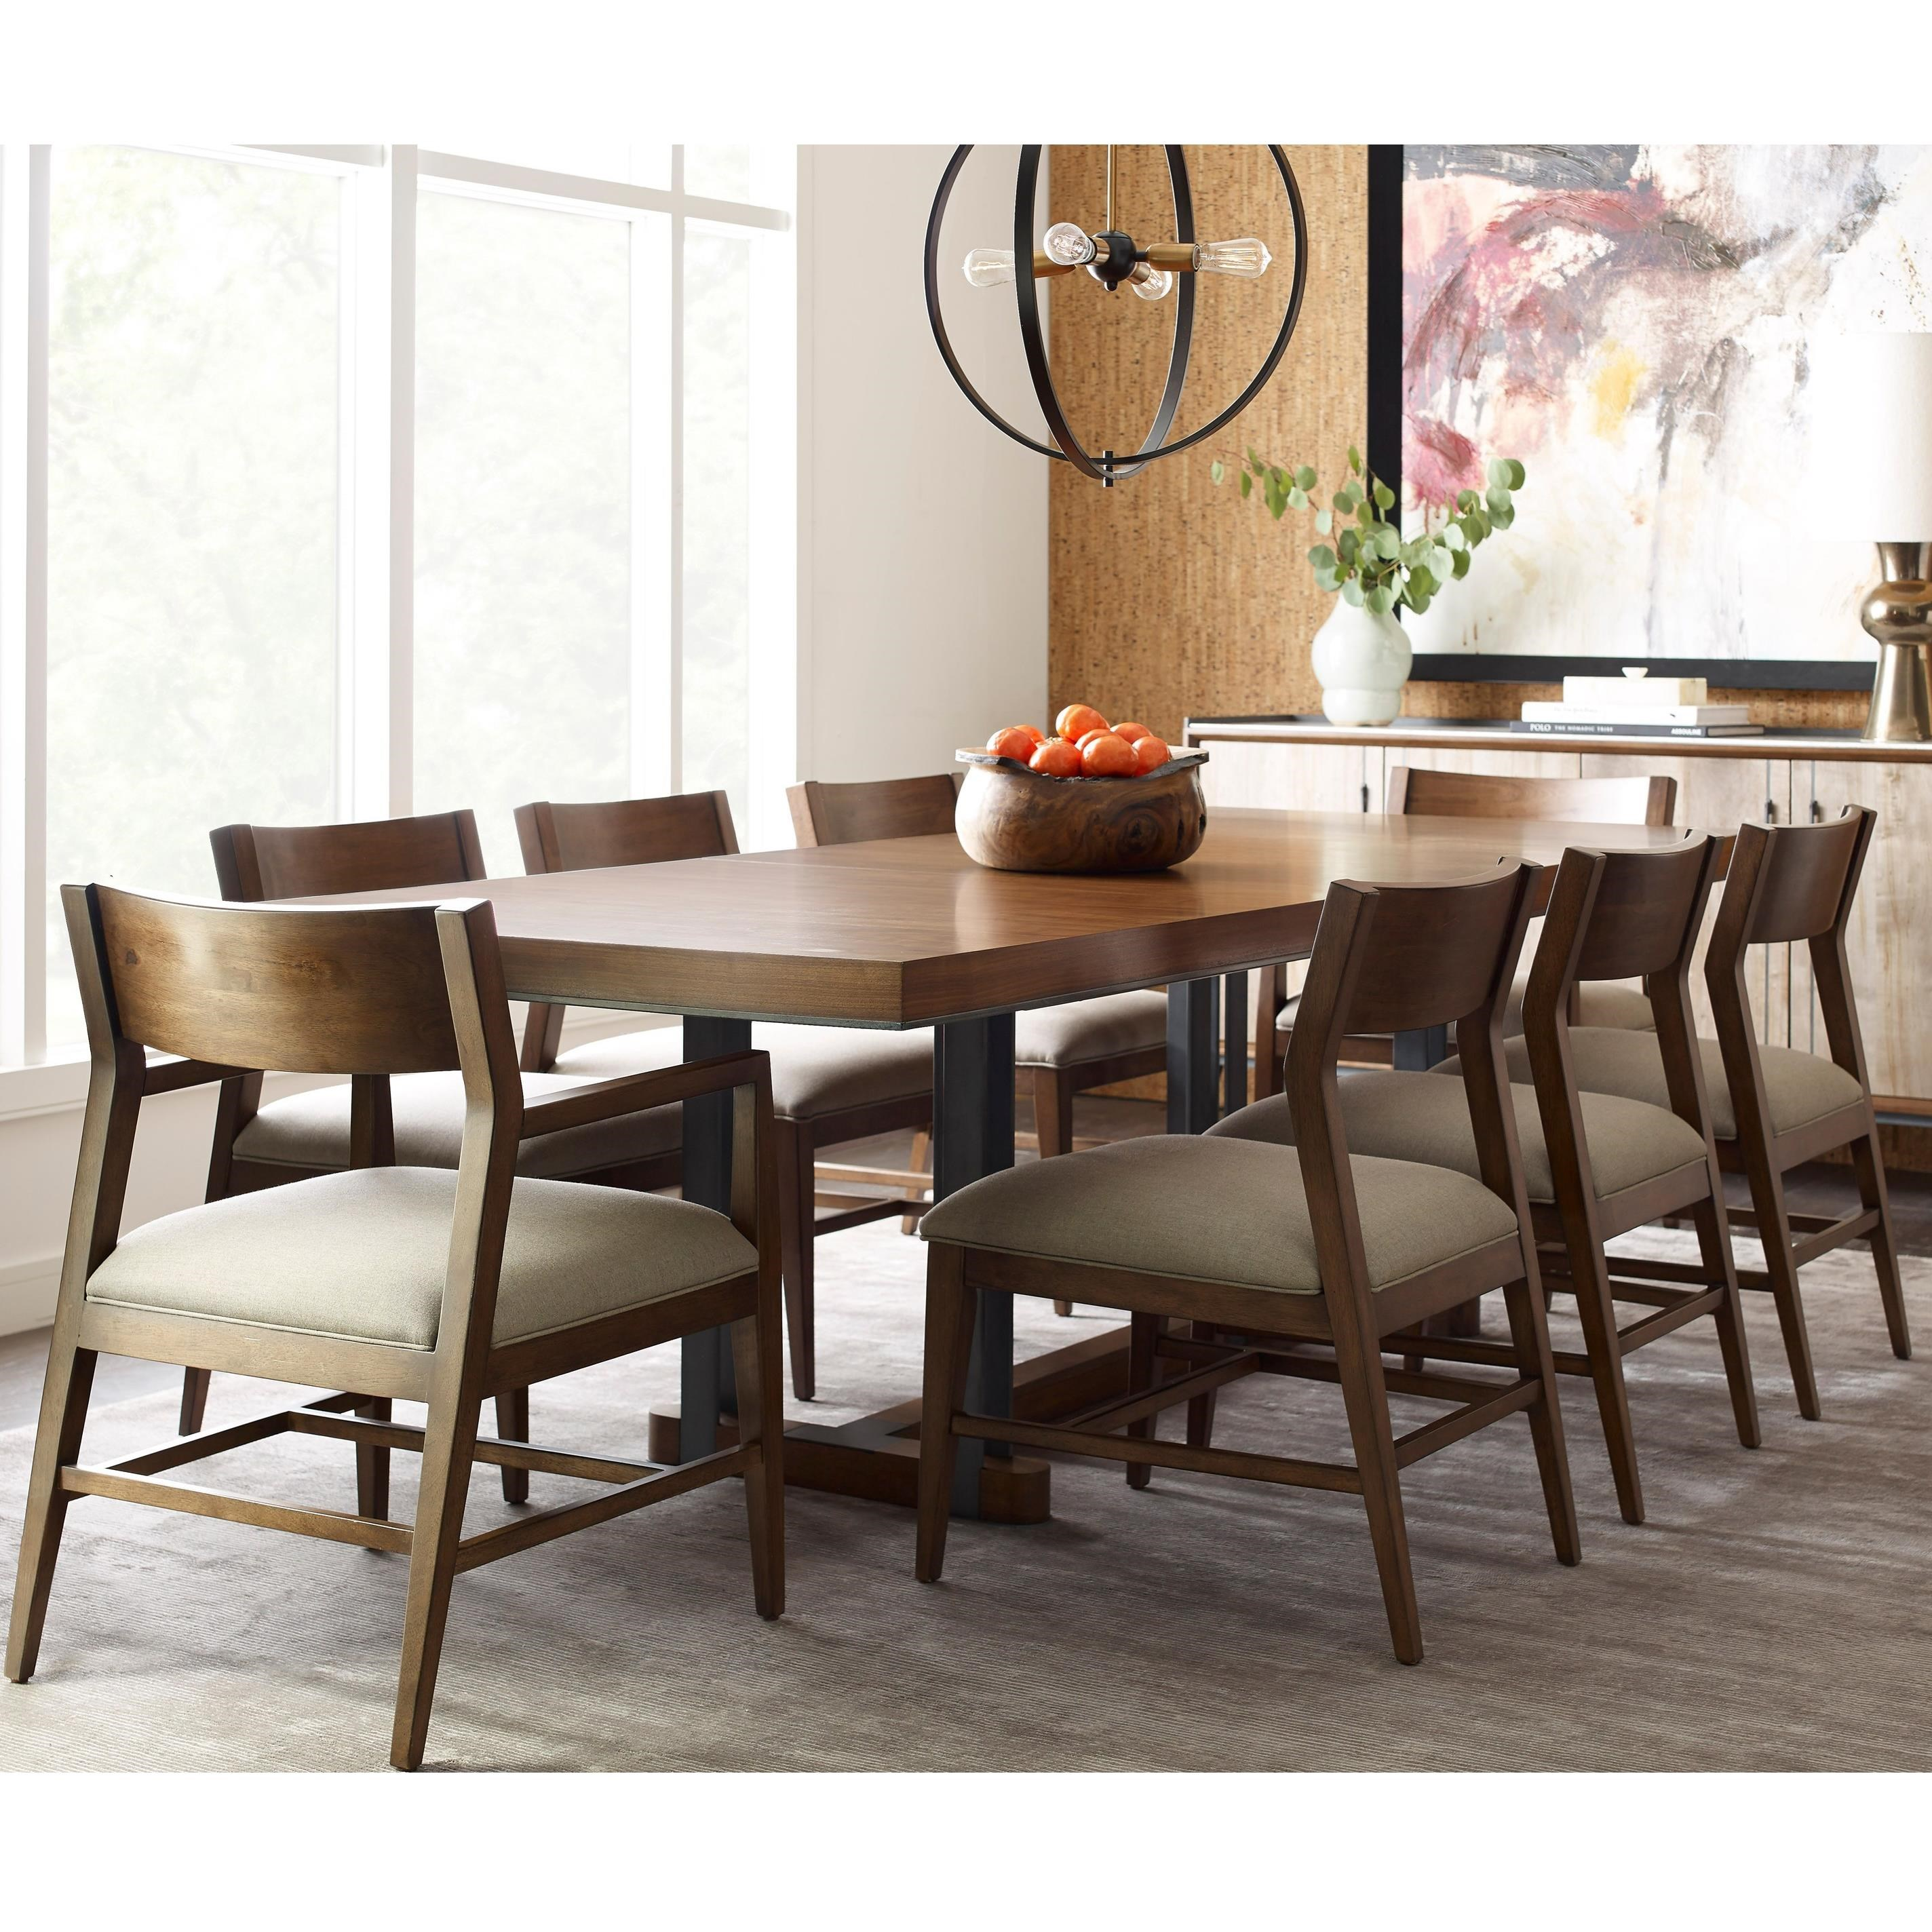 Modern Synergy Rectangular Dining Table and Chair Set by American Drew at Mueller Furniture